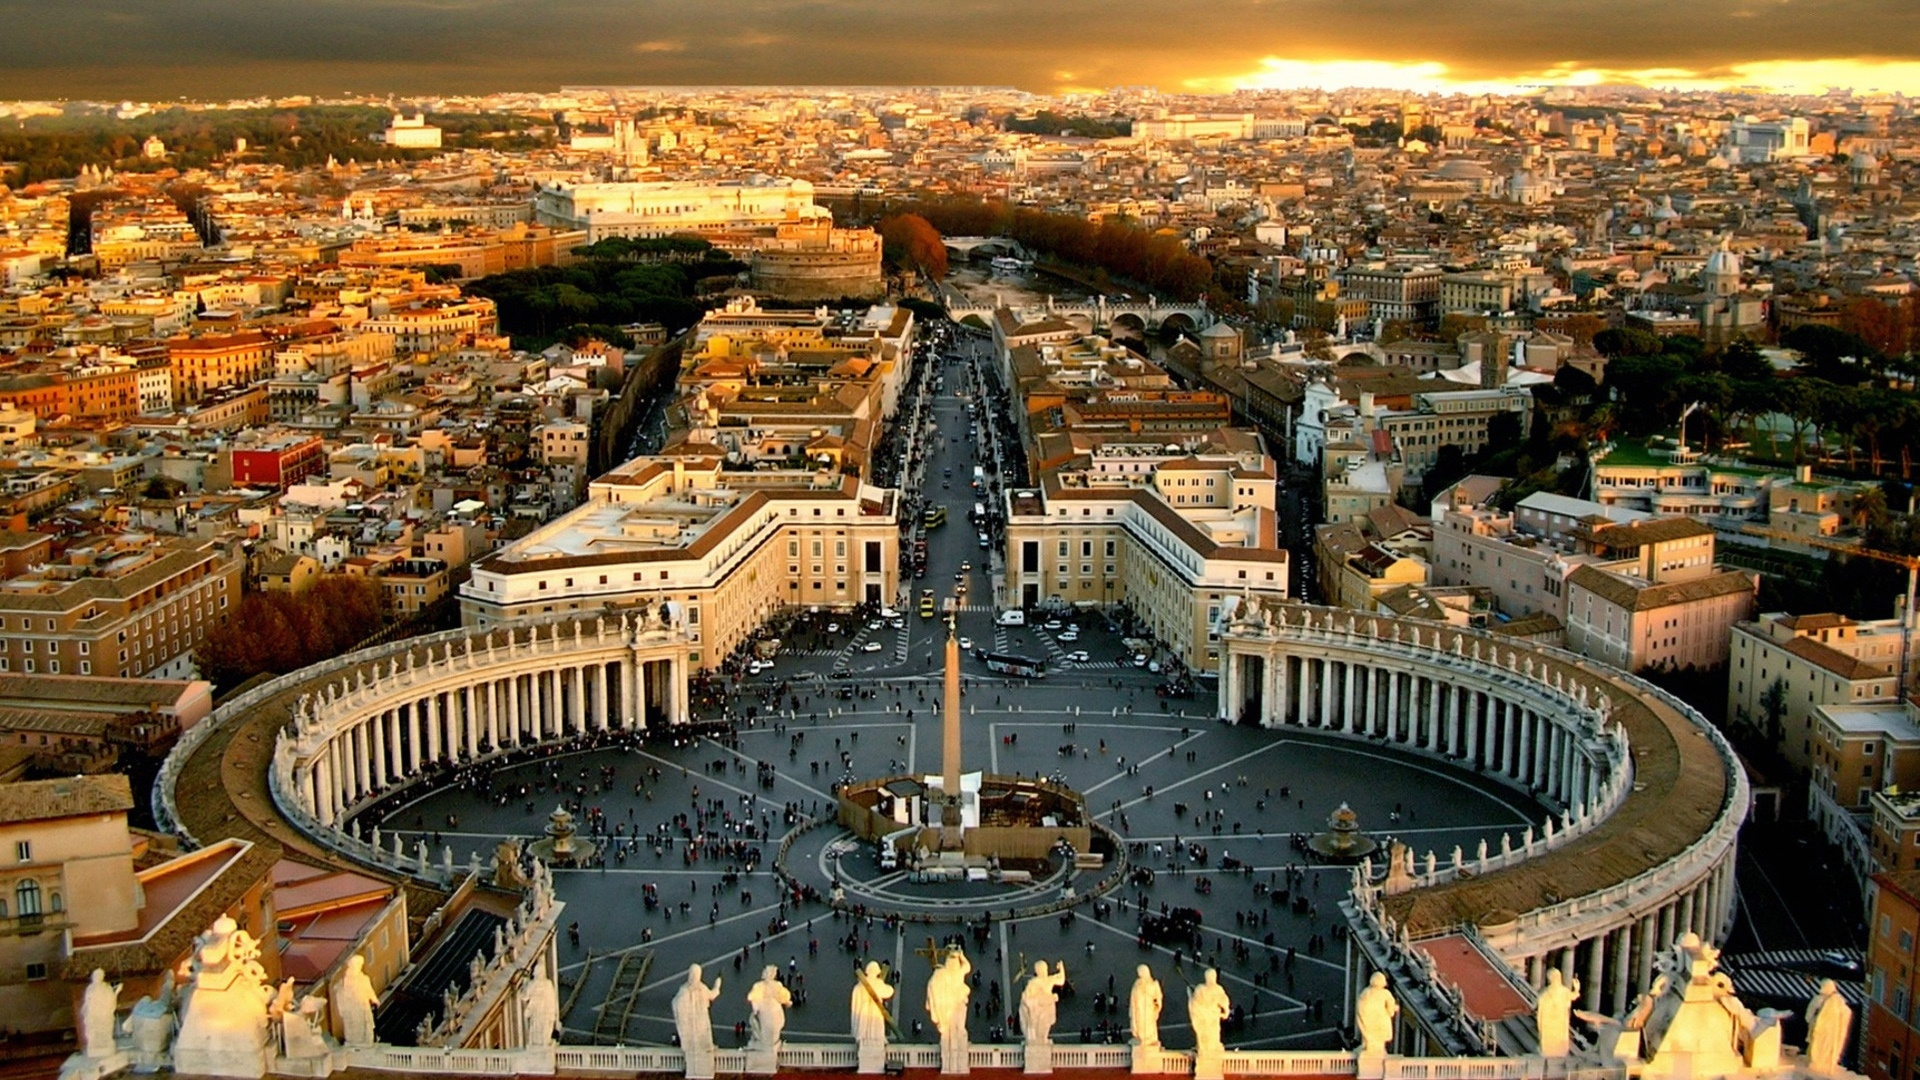 St Peter's Square Rome